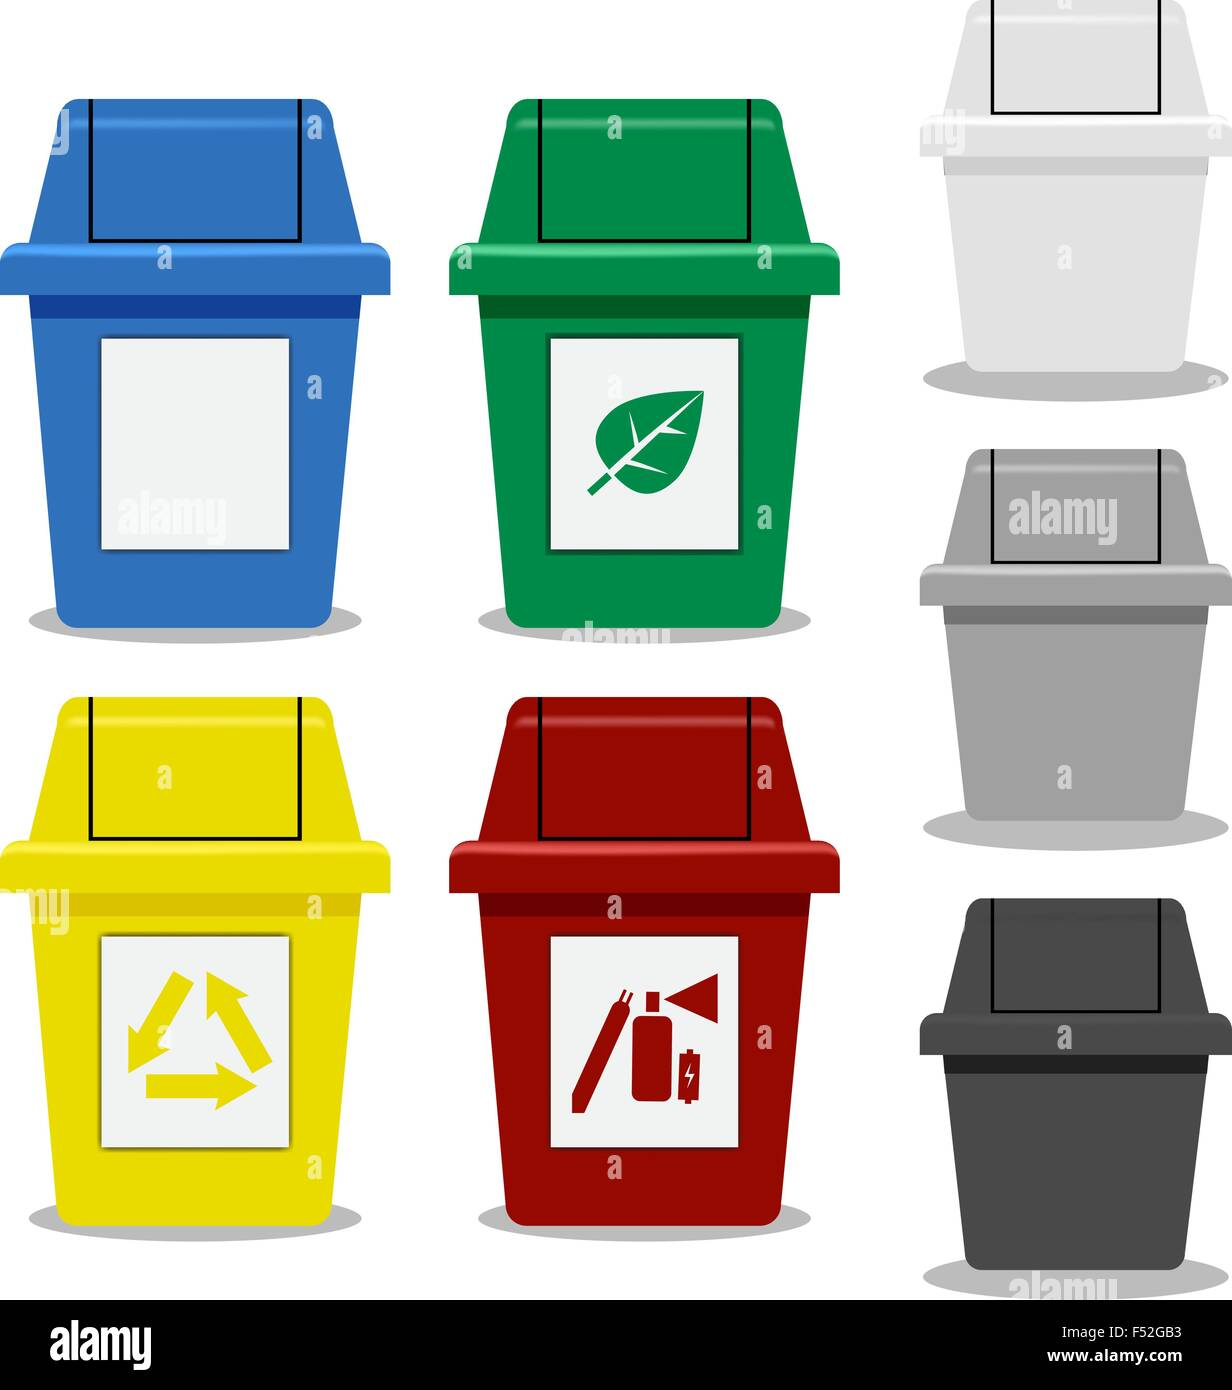 Put Rubbish In The Bin Sign Vector